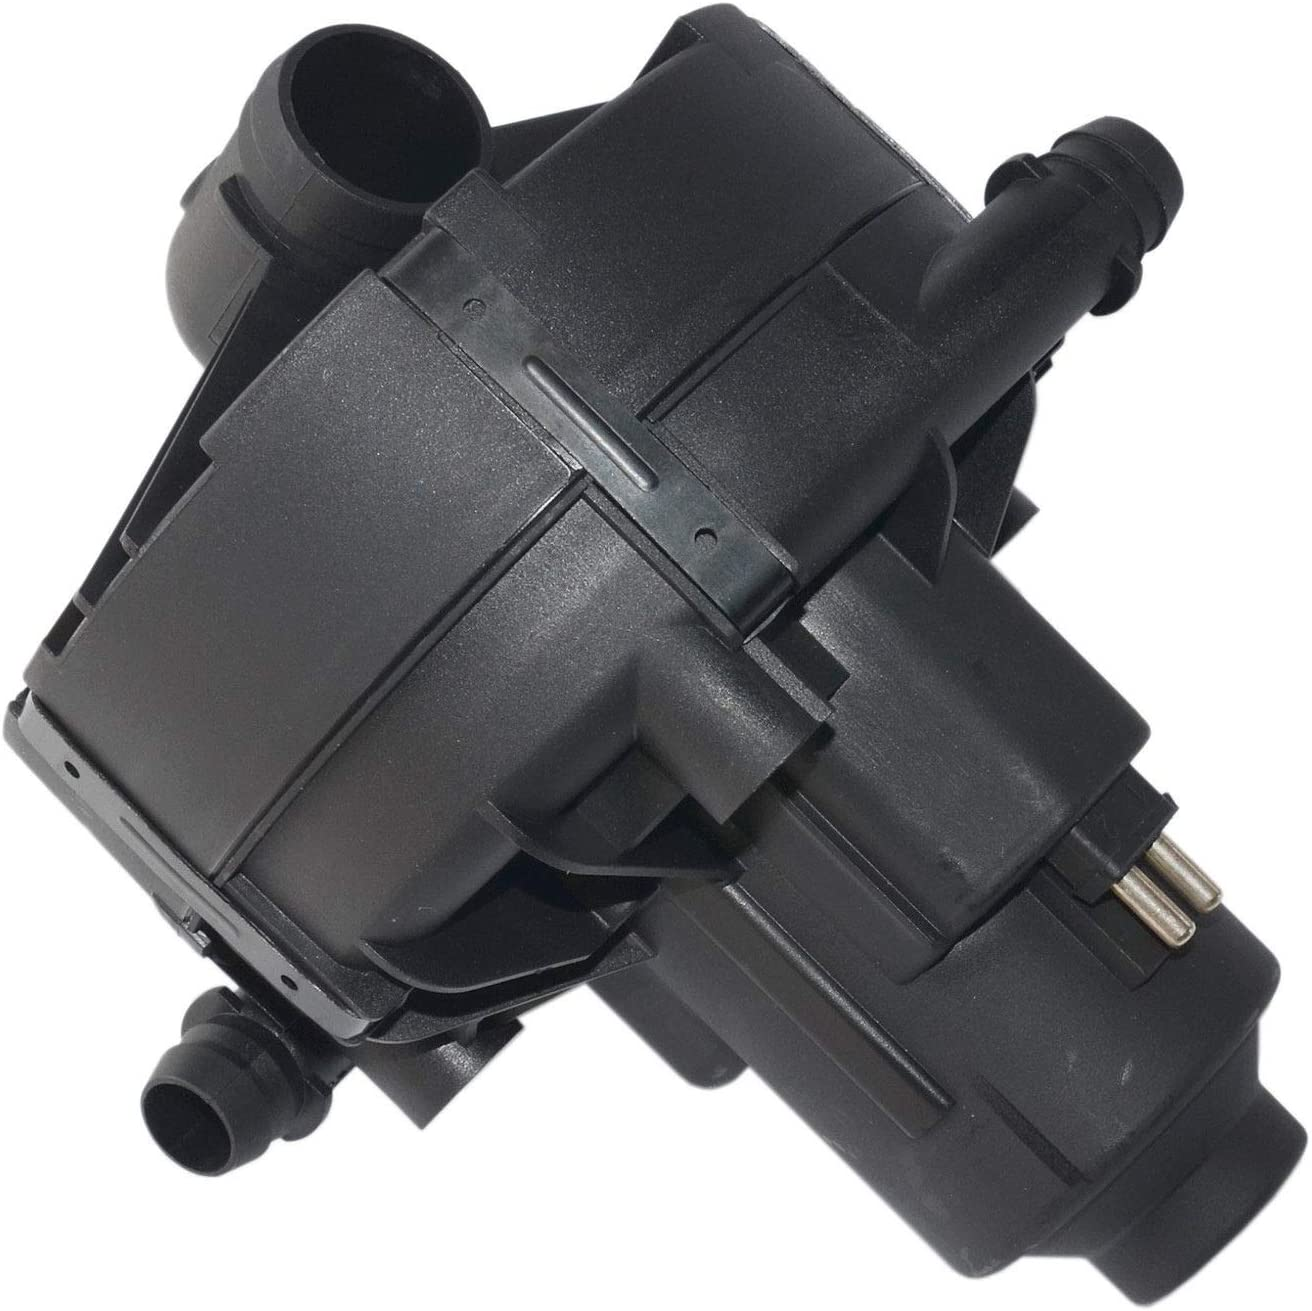 0001404685 0001405185 Secondary Air Pump Smog Pump for Mercedes C300 E350 ML350 713rtPUpd1LSL1500_